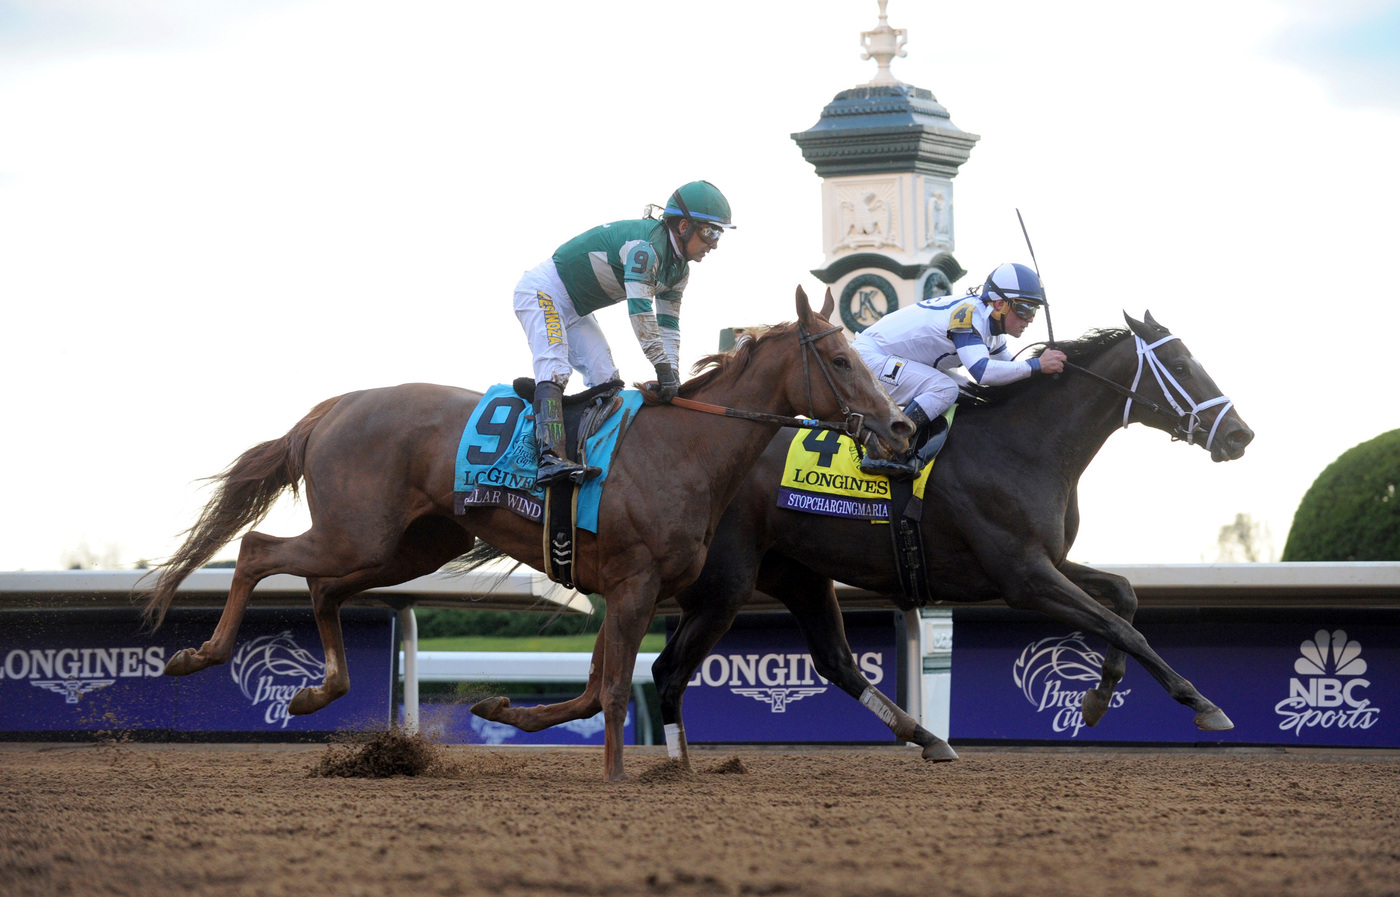 Longines Flat Racing Event: Longines times American Pharoah's historic victory in Breeders' Cup Classic 7